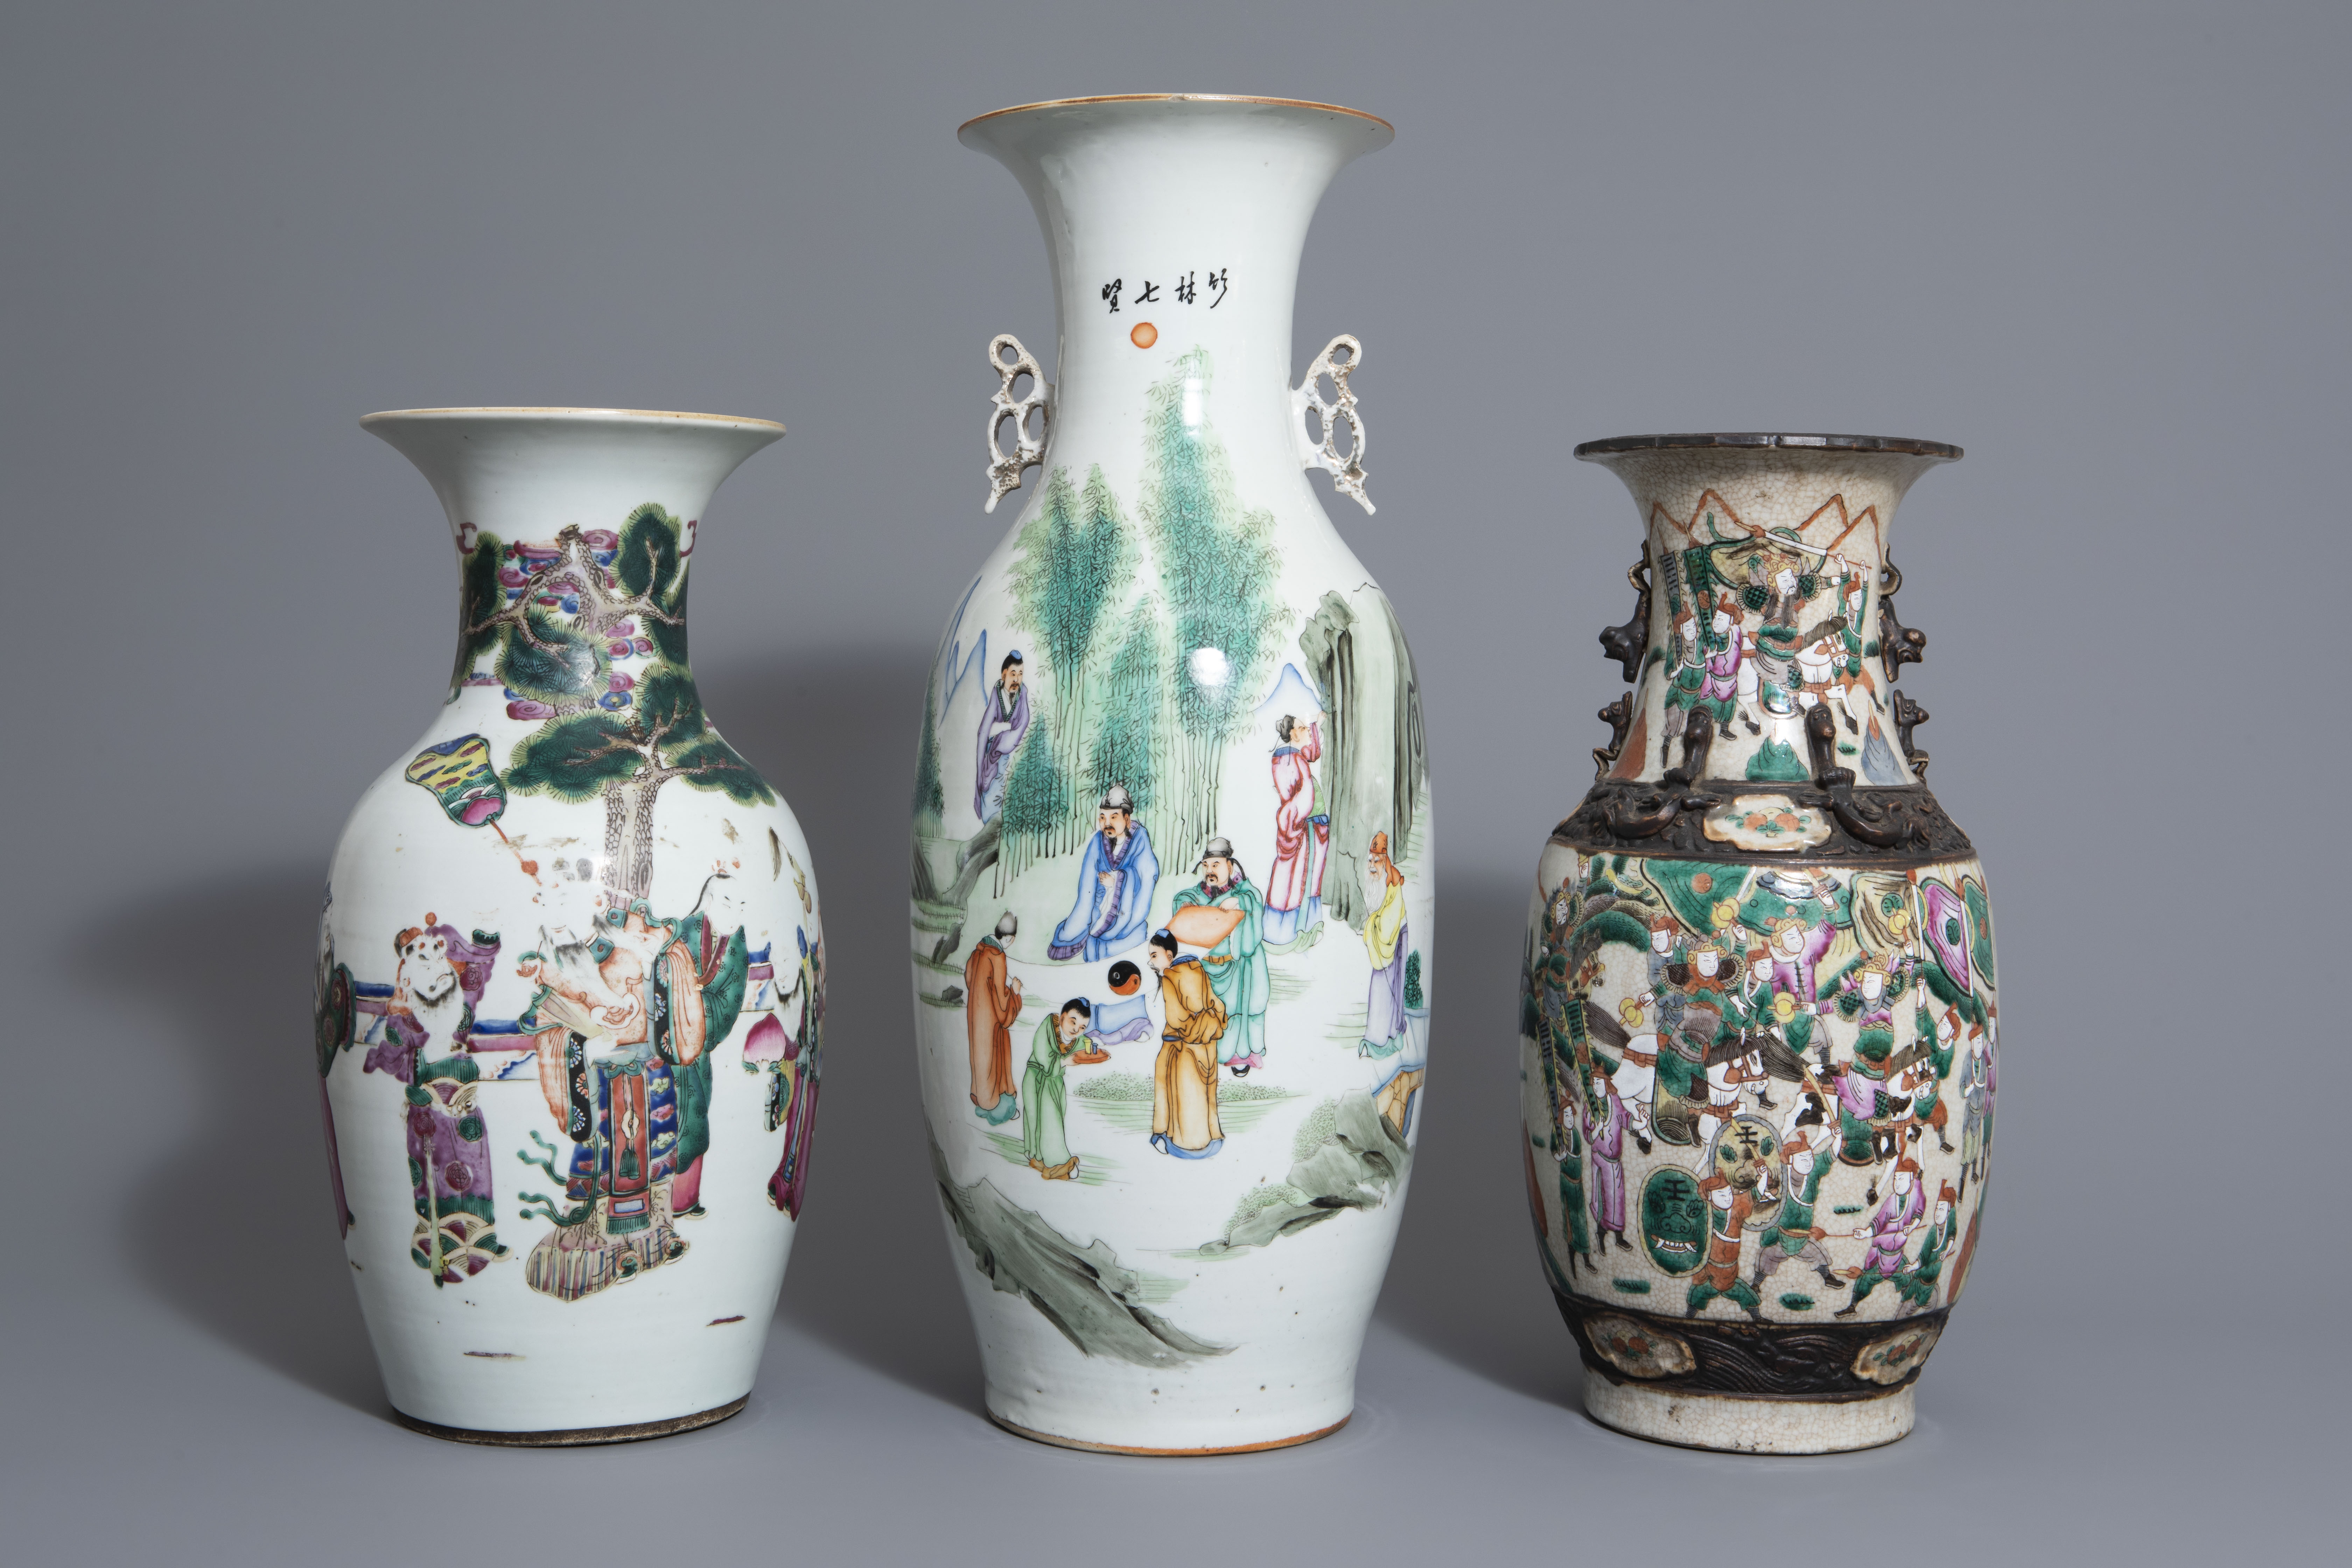 Three Chinese famille rose and Nanking crackle glazed vases, 19th C. - Image 2 of 7